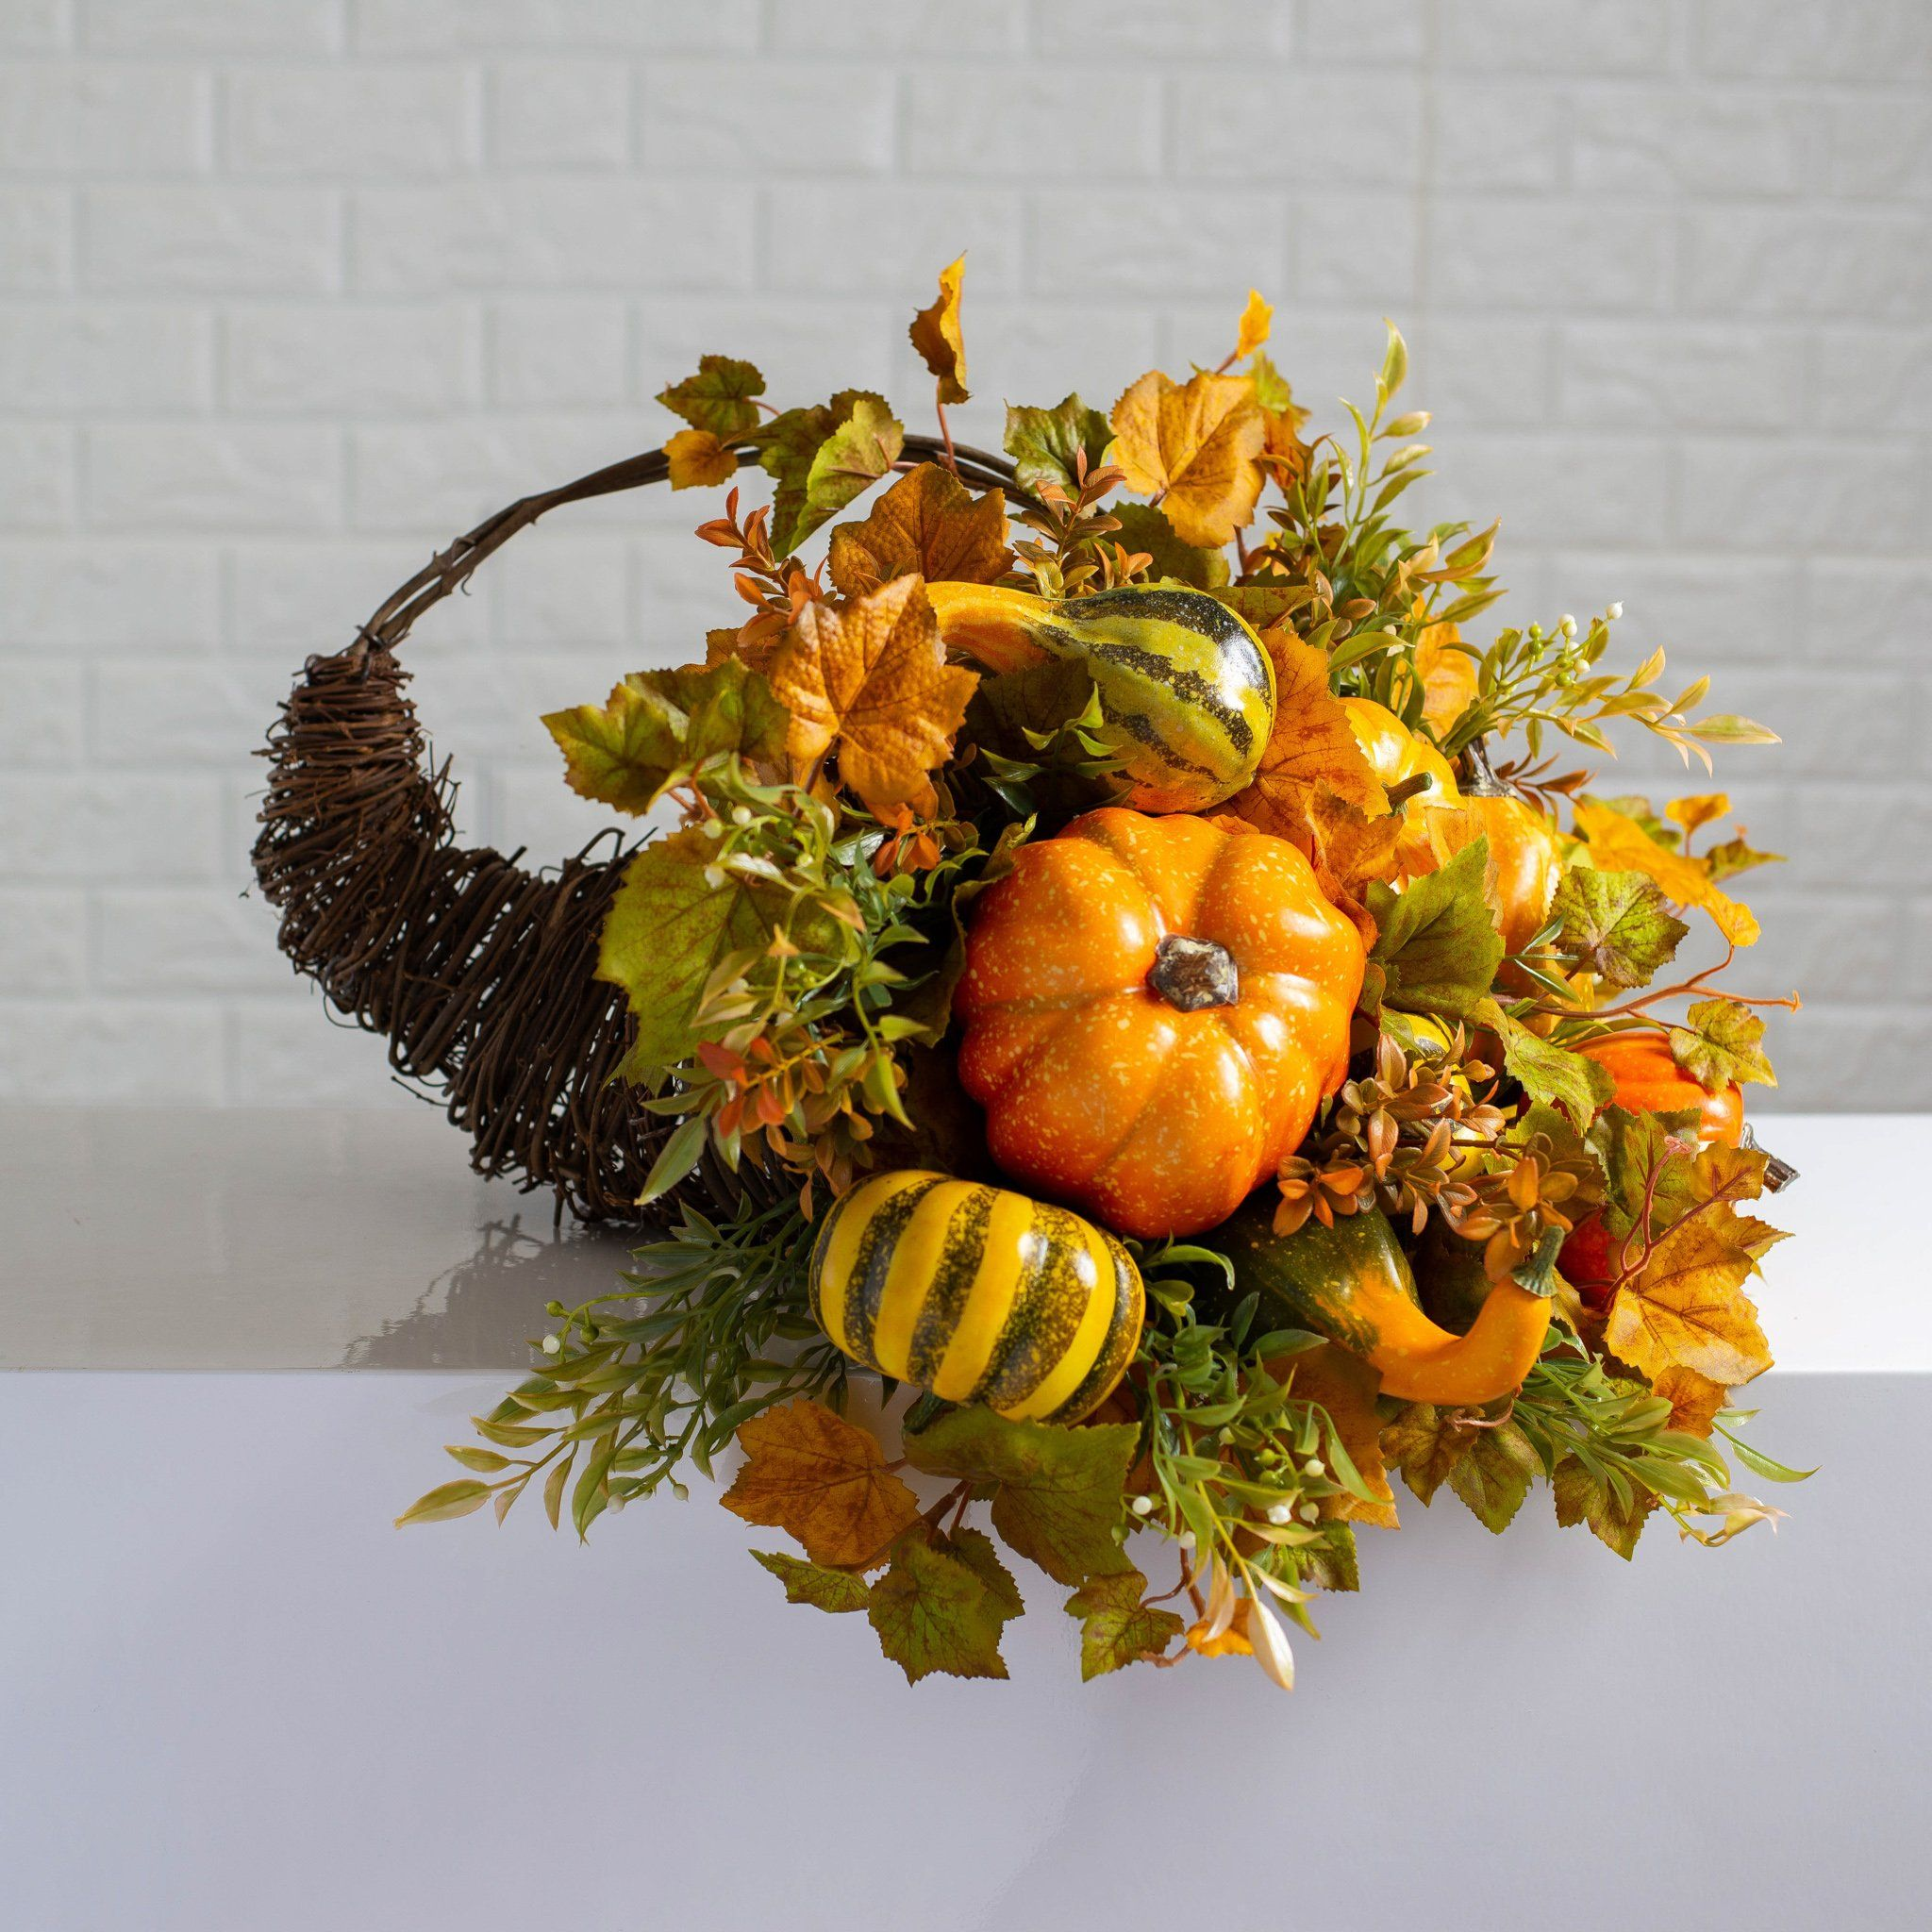 Classic Pumpkin Gourd Fall Leaves Thanksgiving Cornucopia Centerpiece Basket With Handle 3 Size Options In 2020 Thanksgiving Cornucopia Centerpiece Cornucopia Centerpiece Thanksgiving Cornucopia